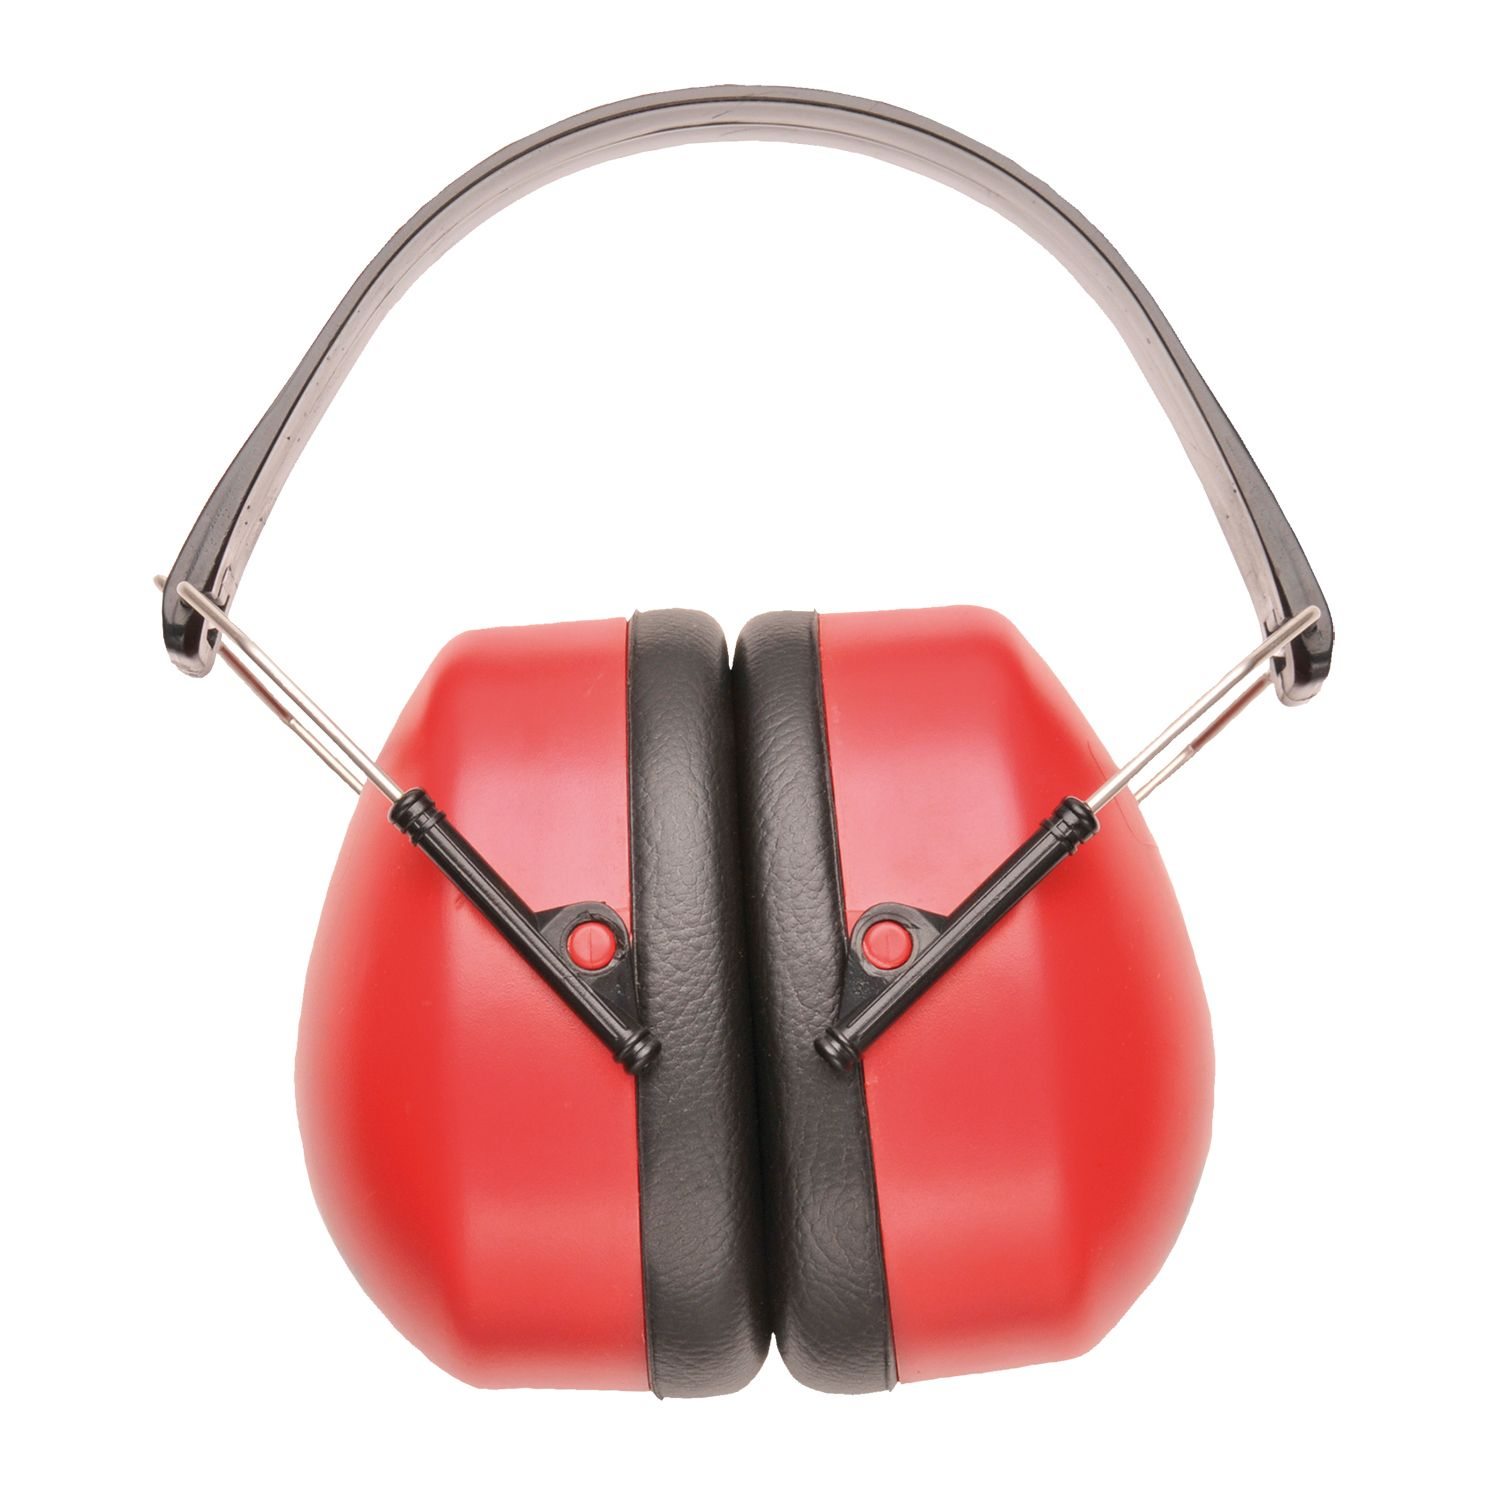 portwest PW41 Ear Muff